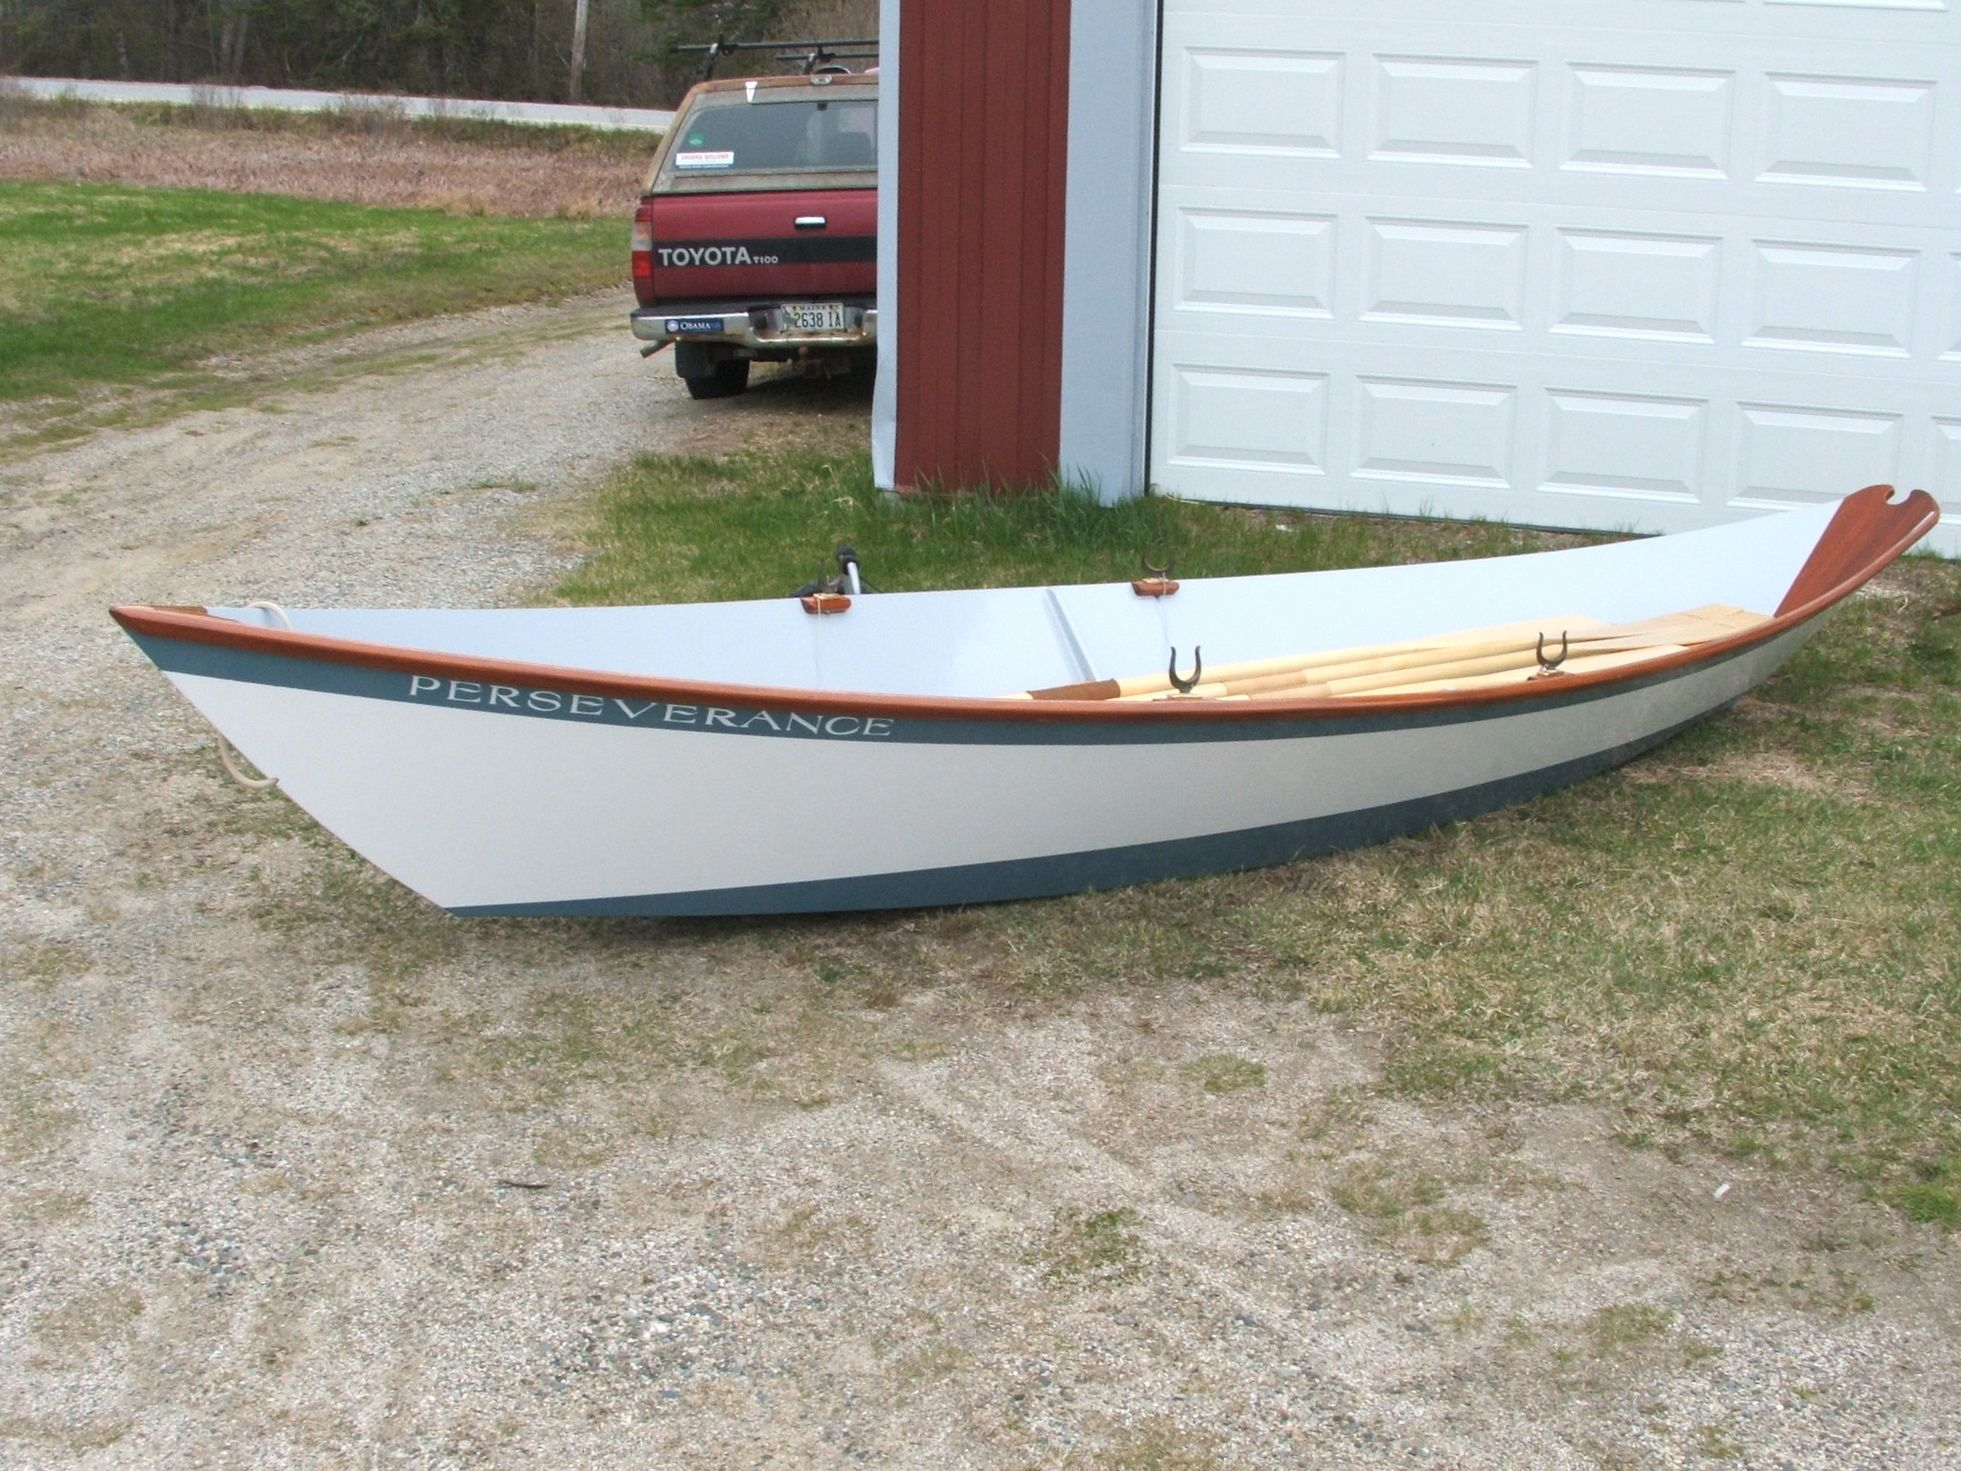 Dynamite Payson Boat Plans : Gloucester light dory designed by phil bolger built from